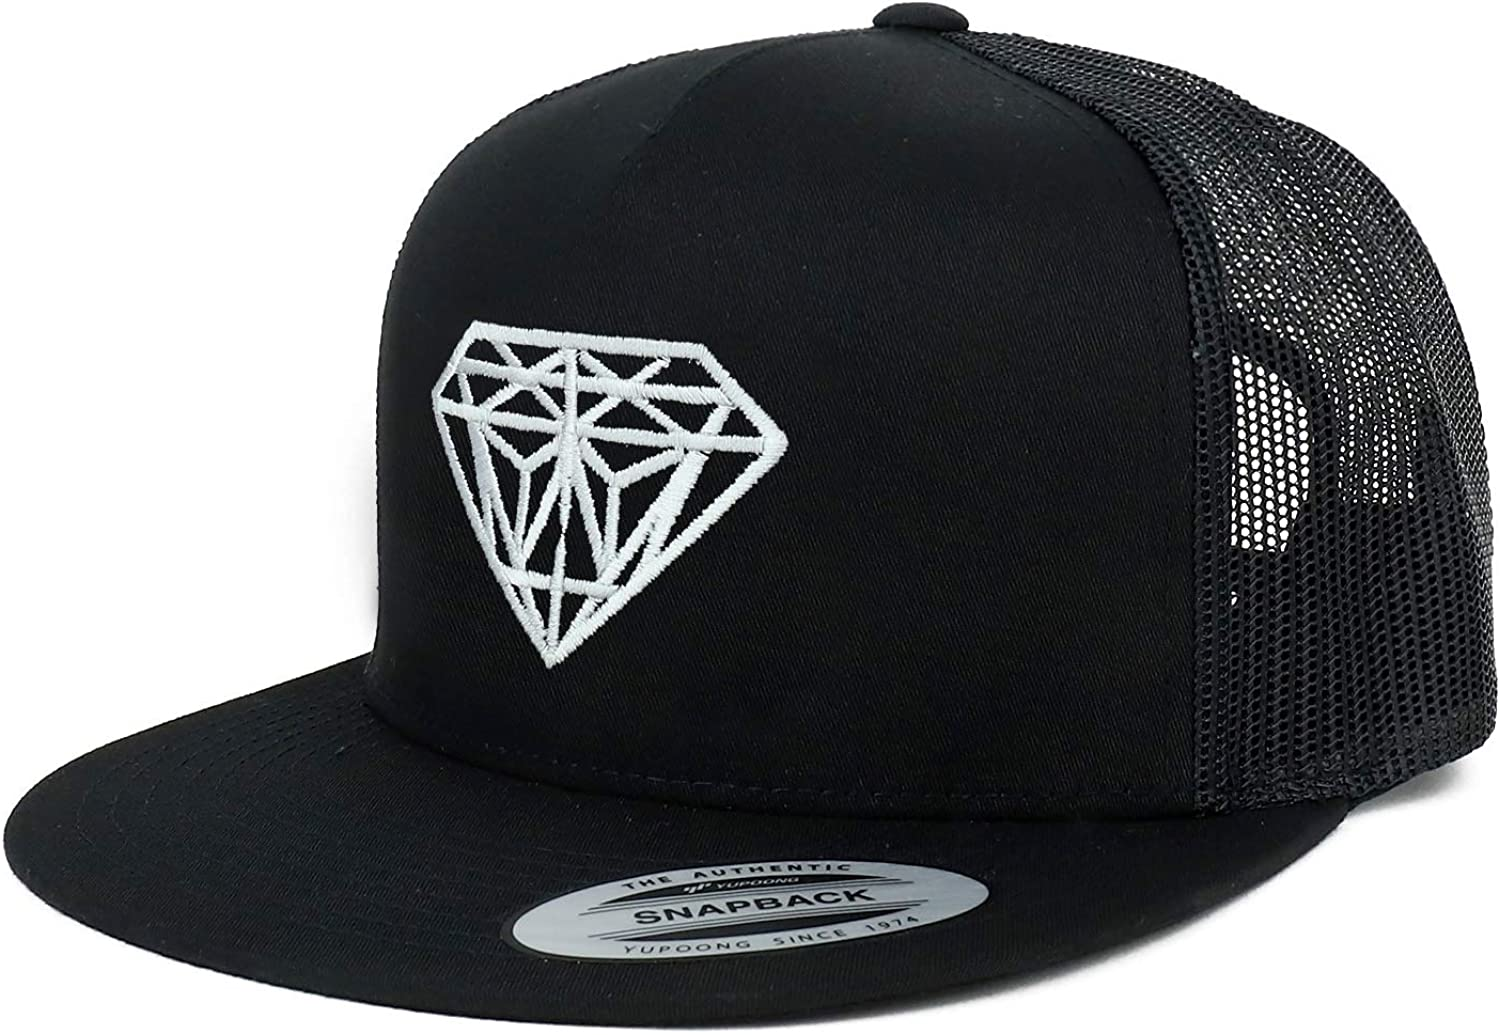 Armycrew Flexfit White Diamond Manufacturer OFFicial shop Embroidered Snap Panel 5 Flatbill online shopping